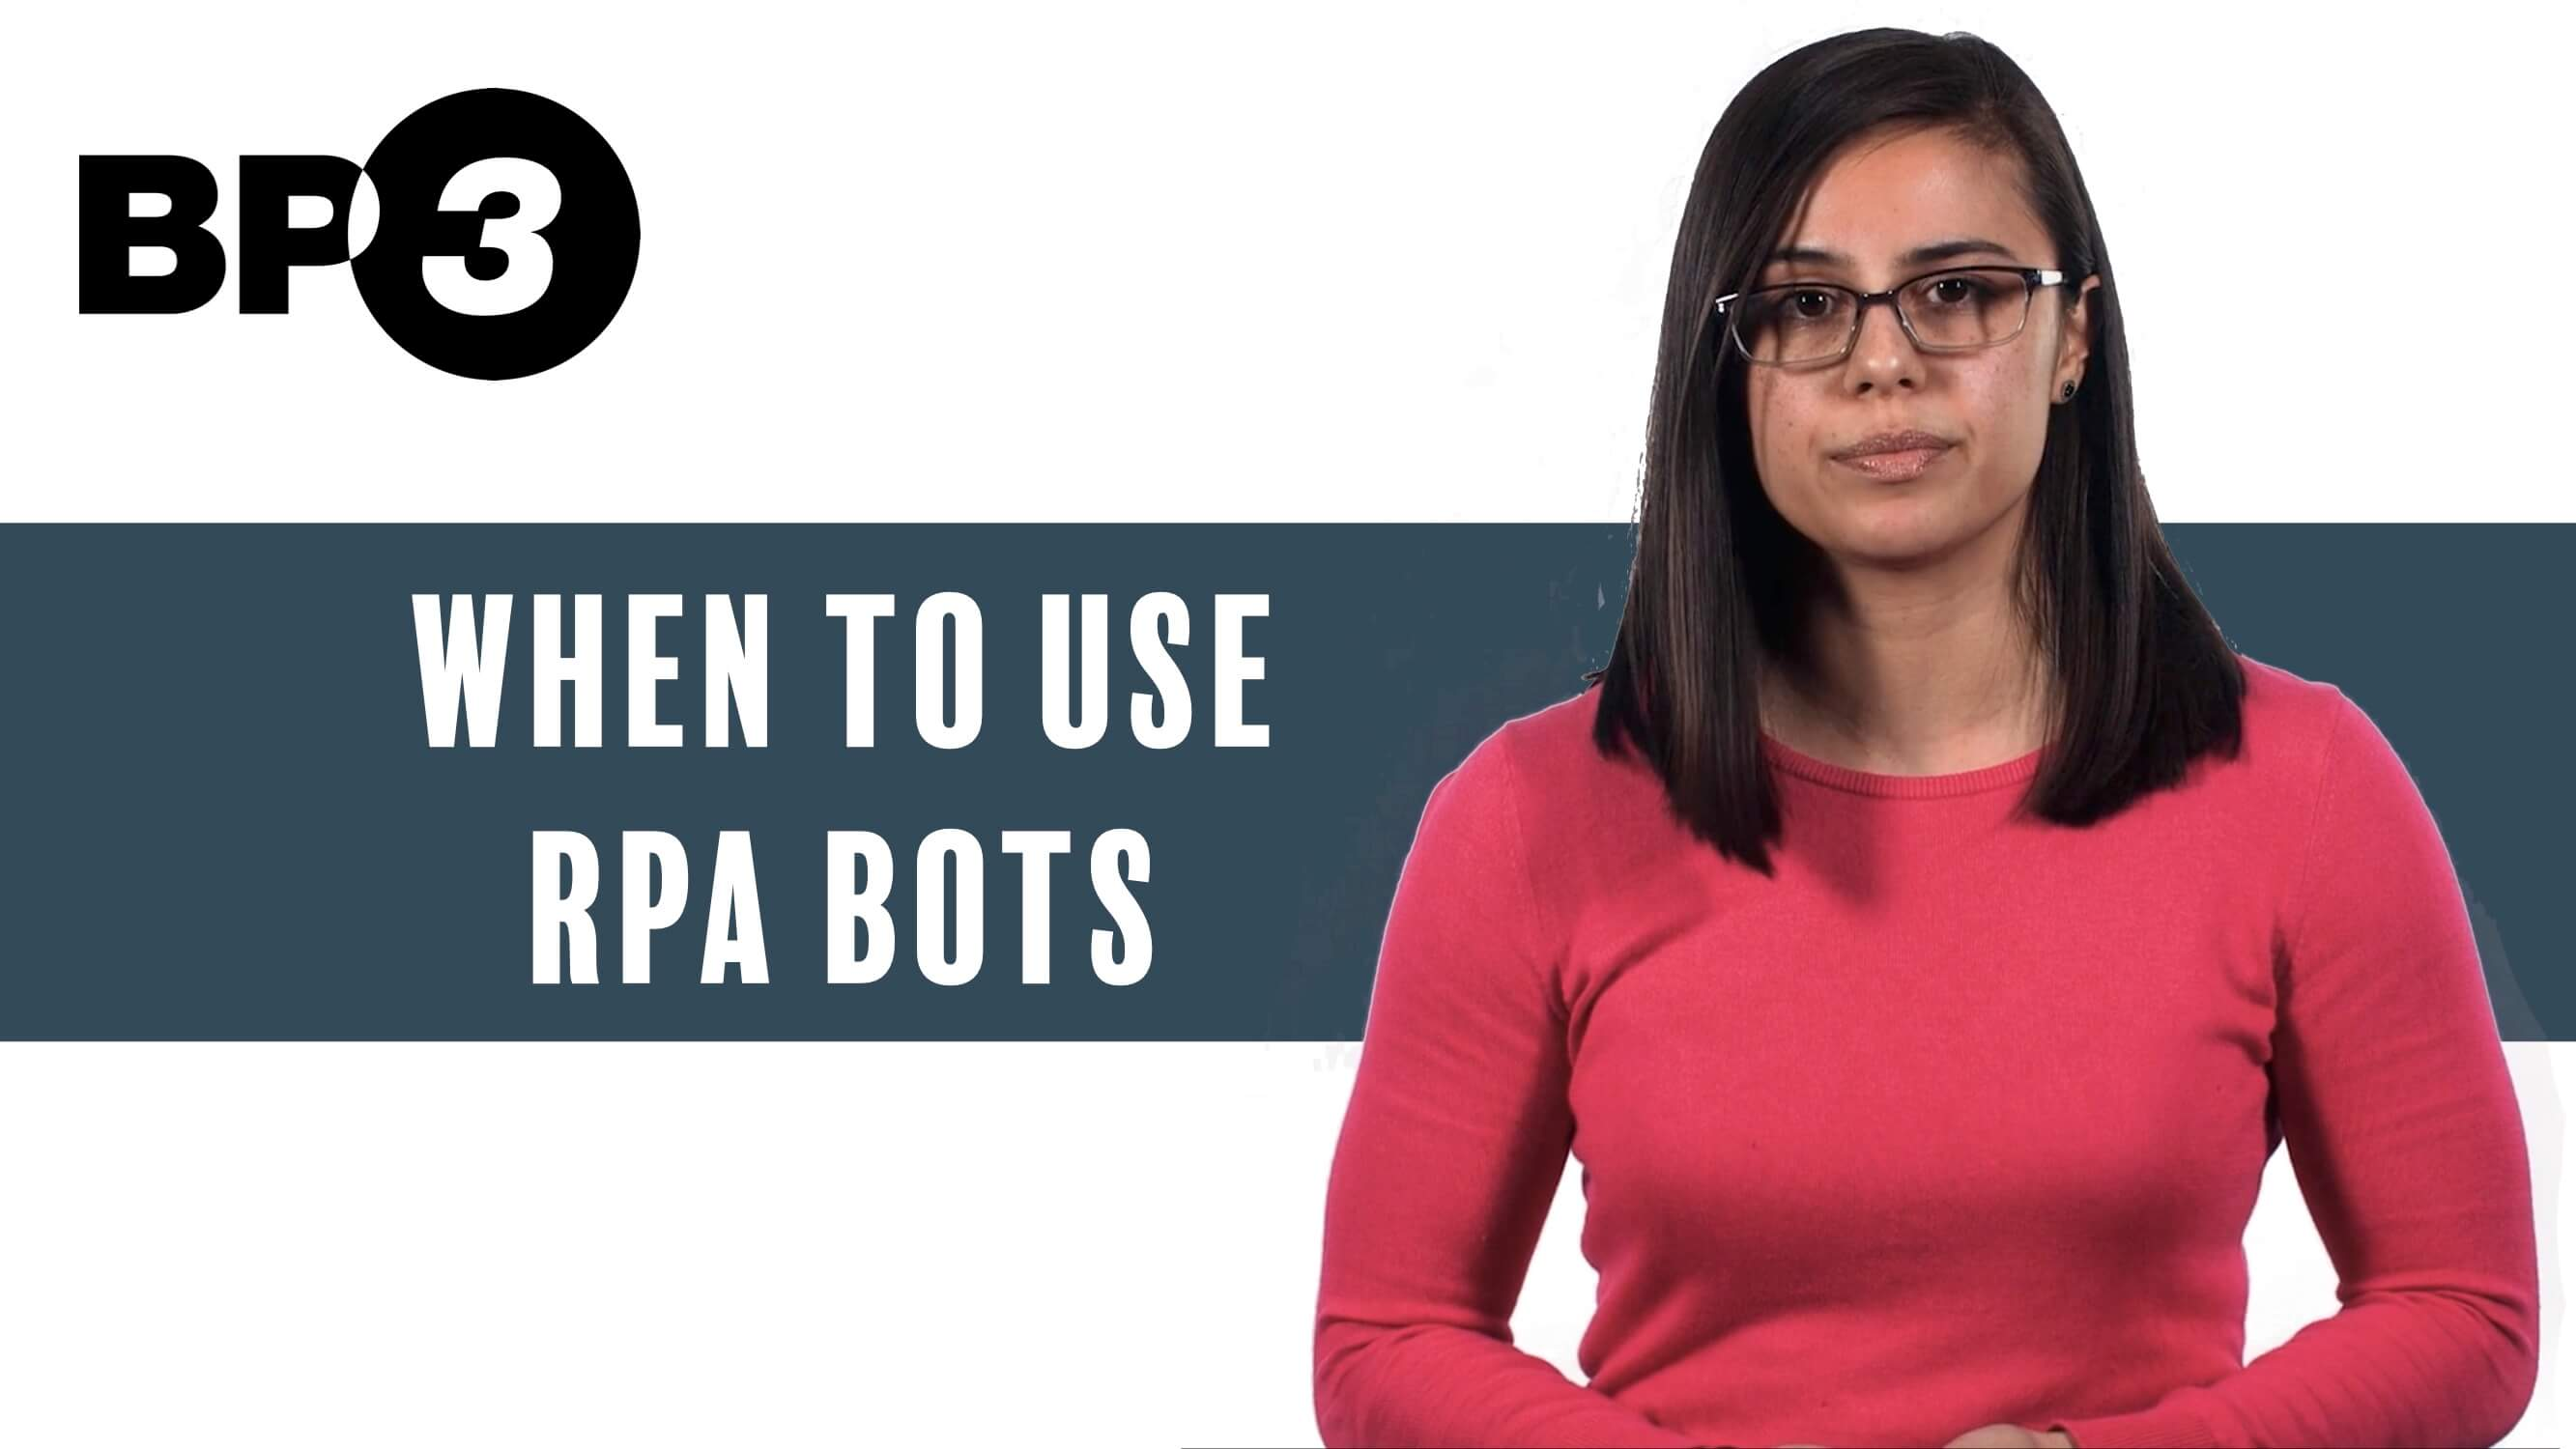 When to Use RPA Bots